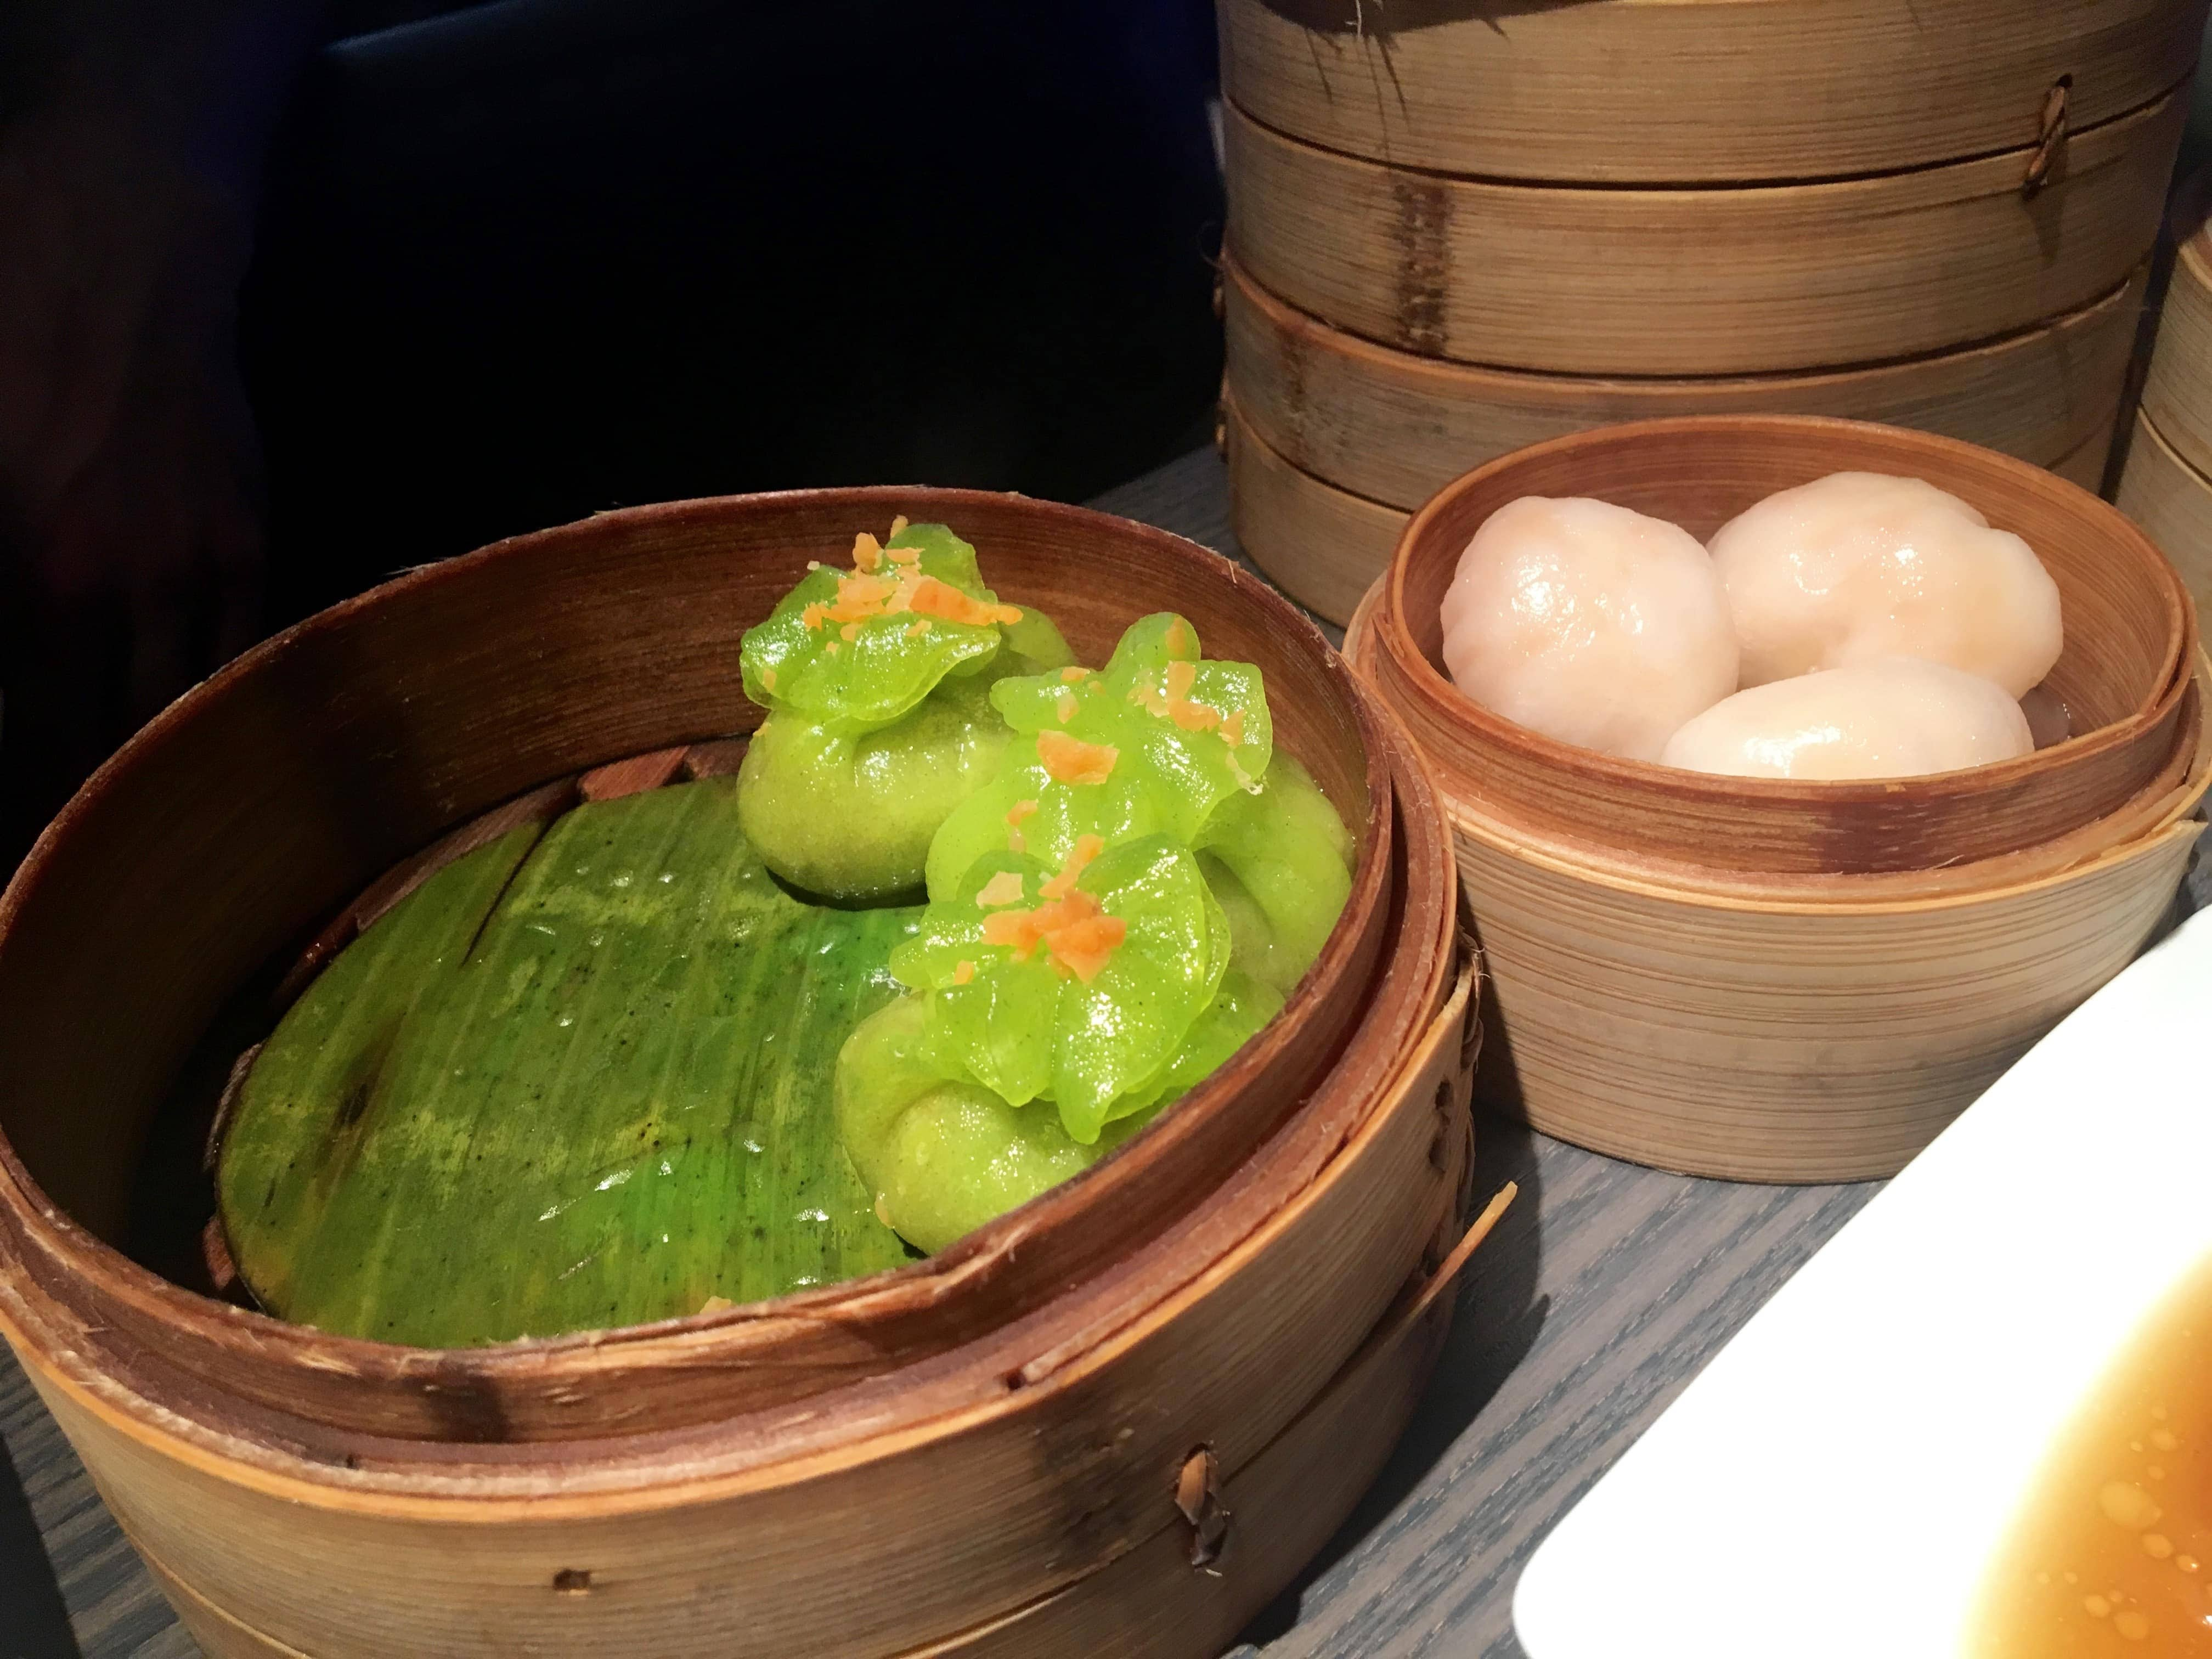 yautacha soho michelin dimsum restaurants in soho london best restaurants in soho london www.fromlusttilldawn.com lust till dawn dim sum